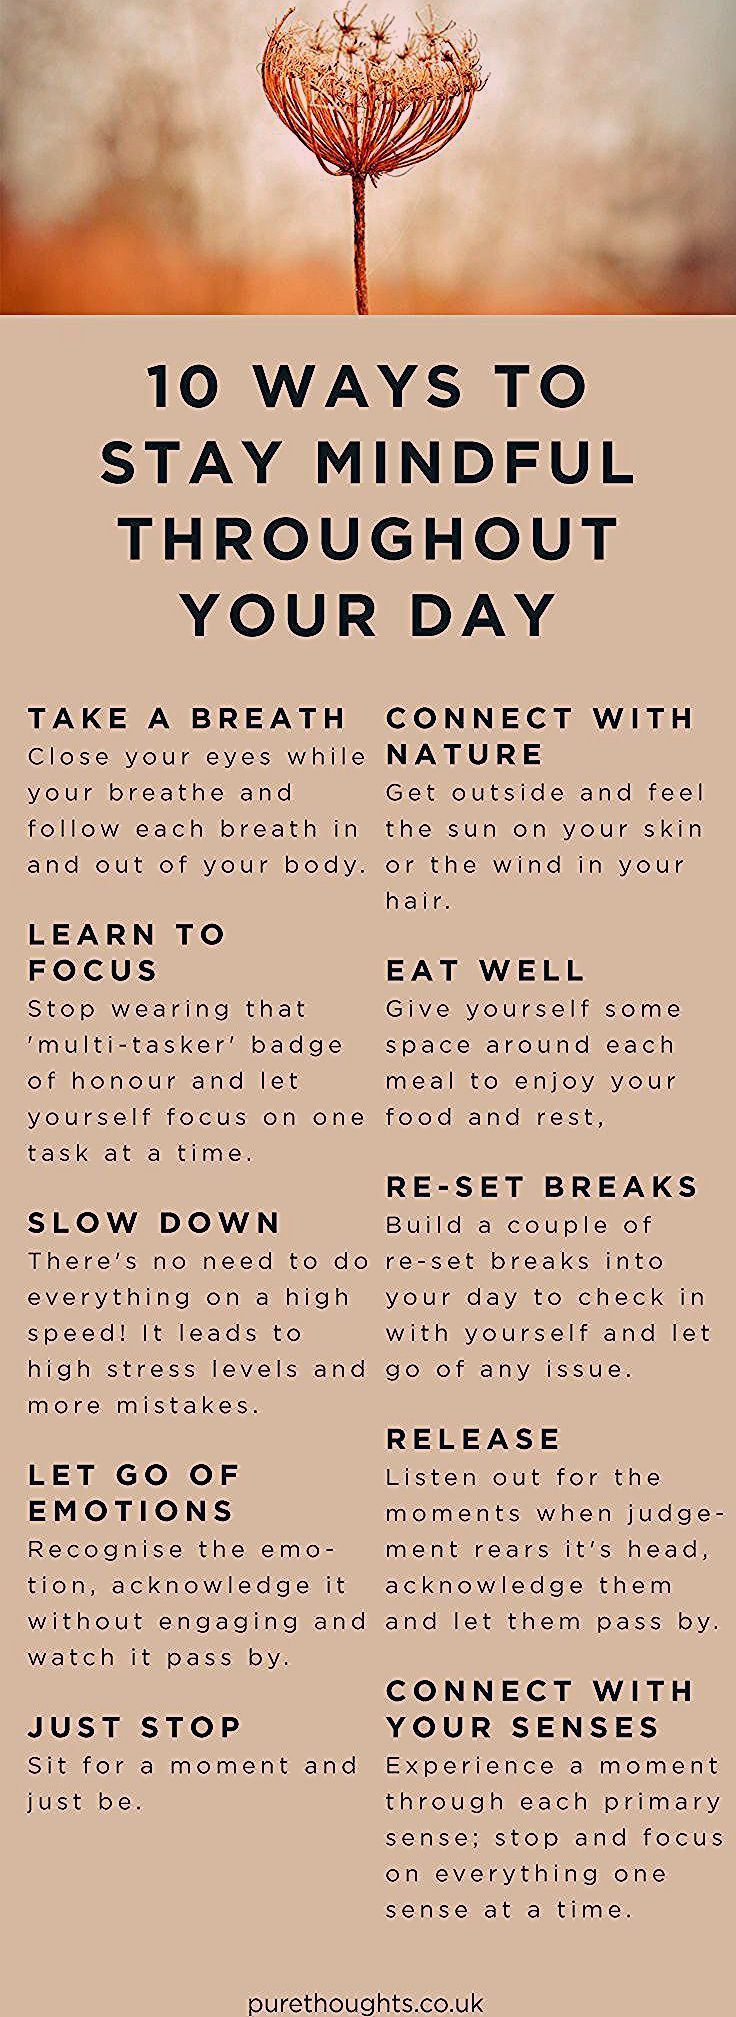 Photo of 10 Ways to Stay Mindful Throughout Your Day